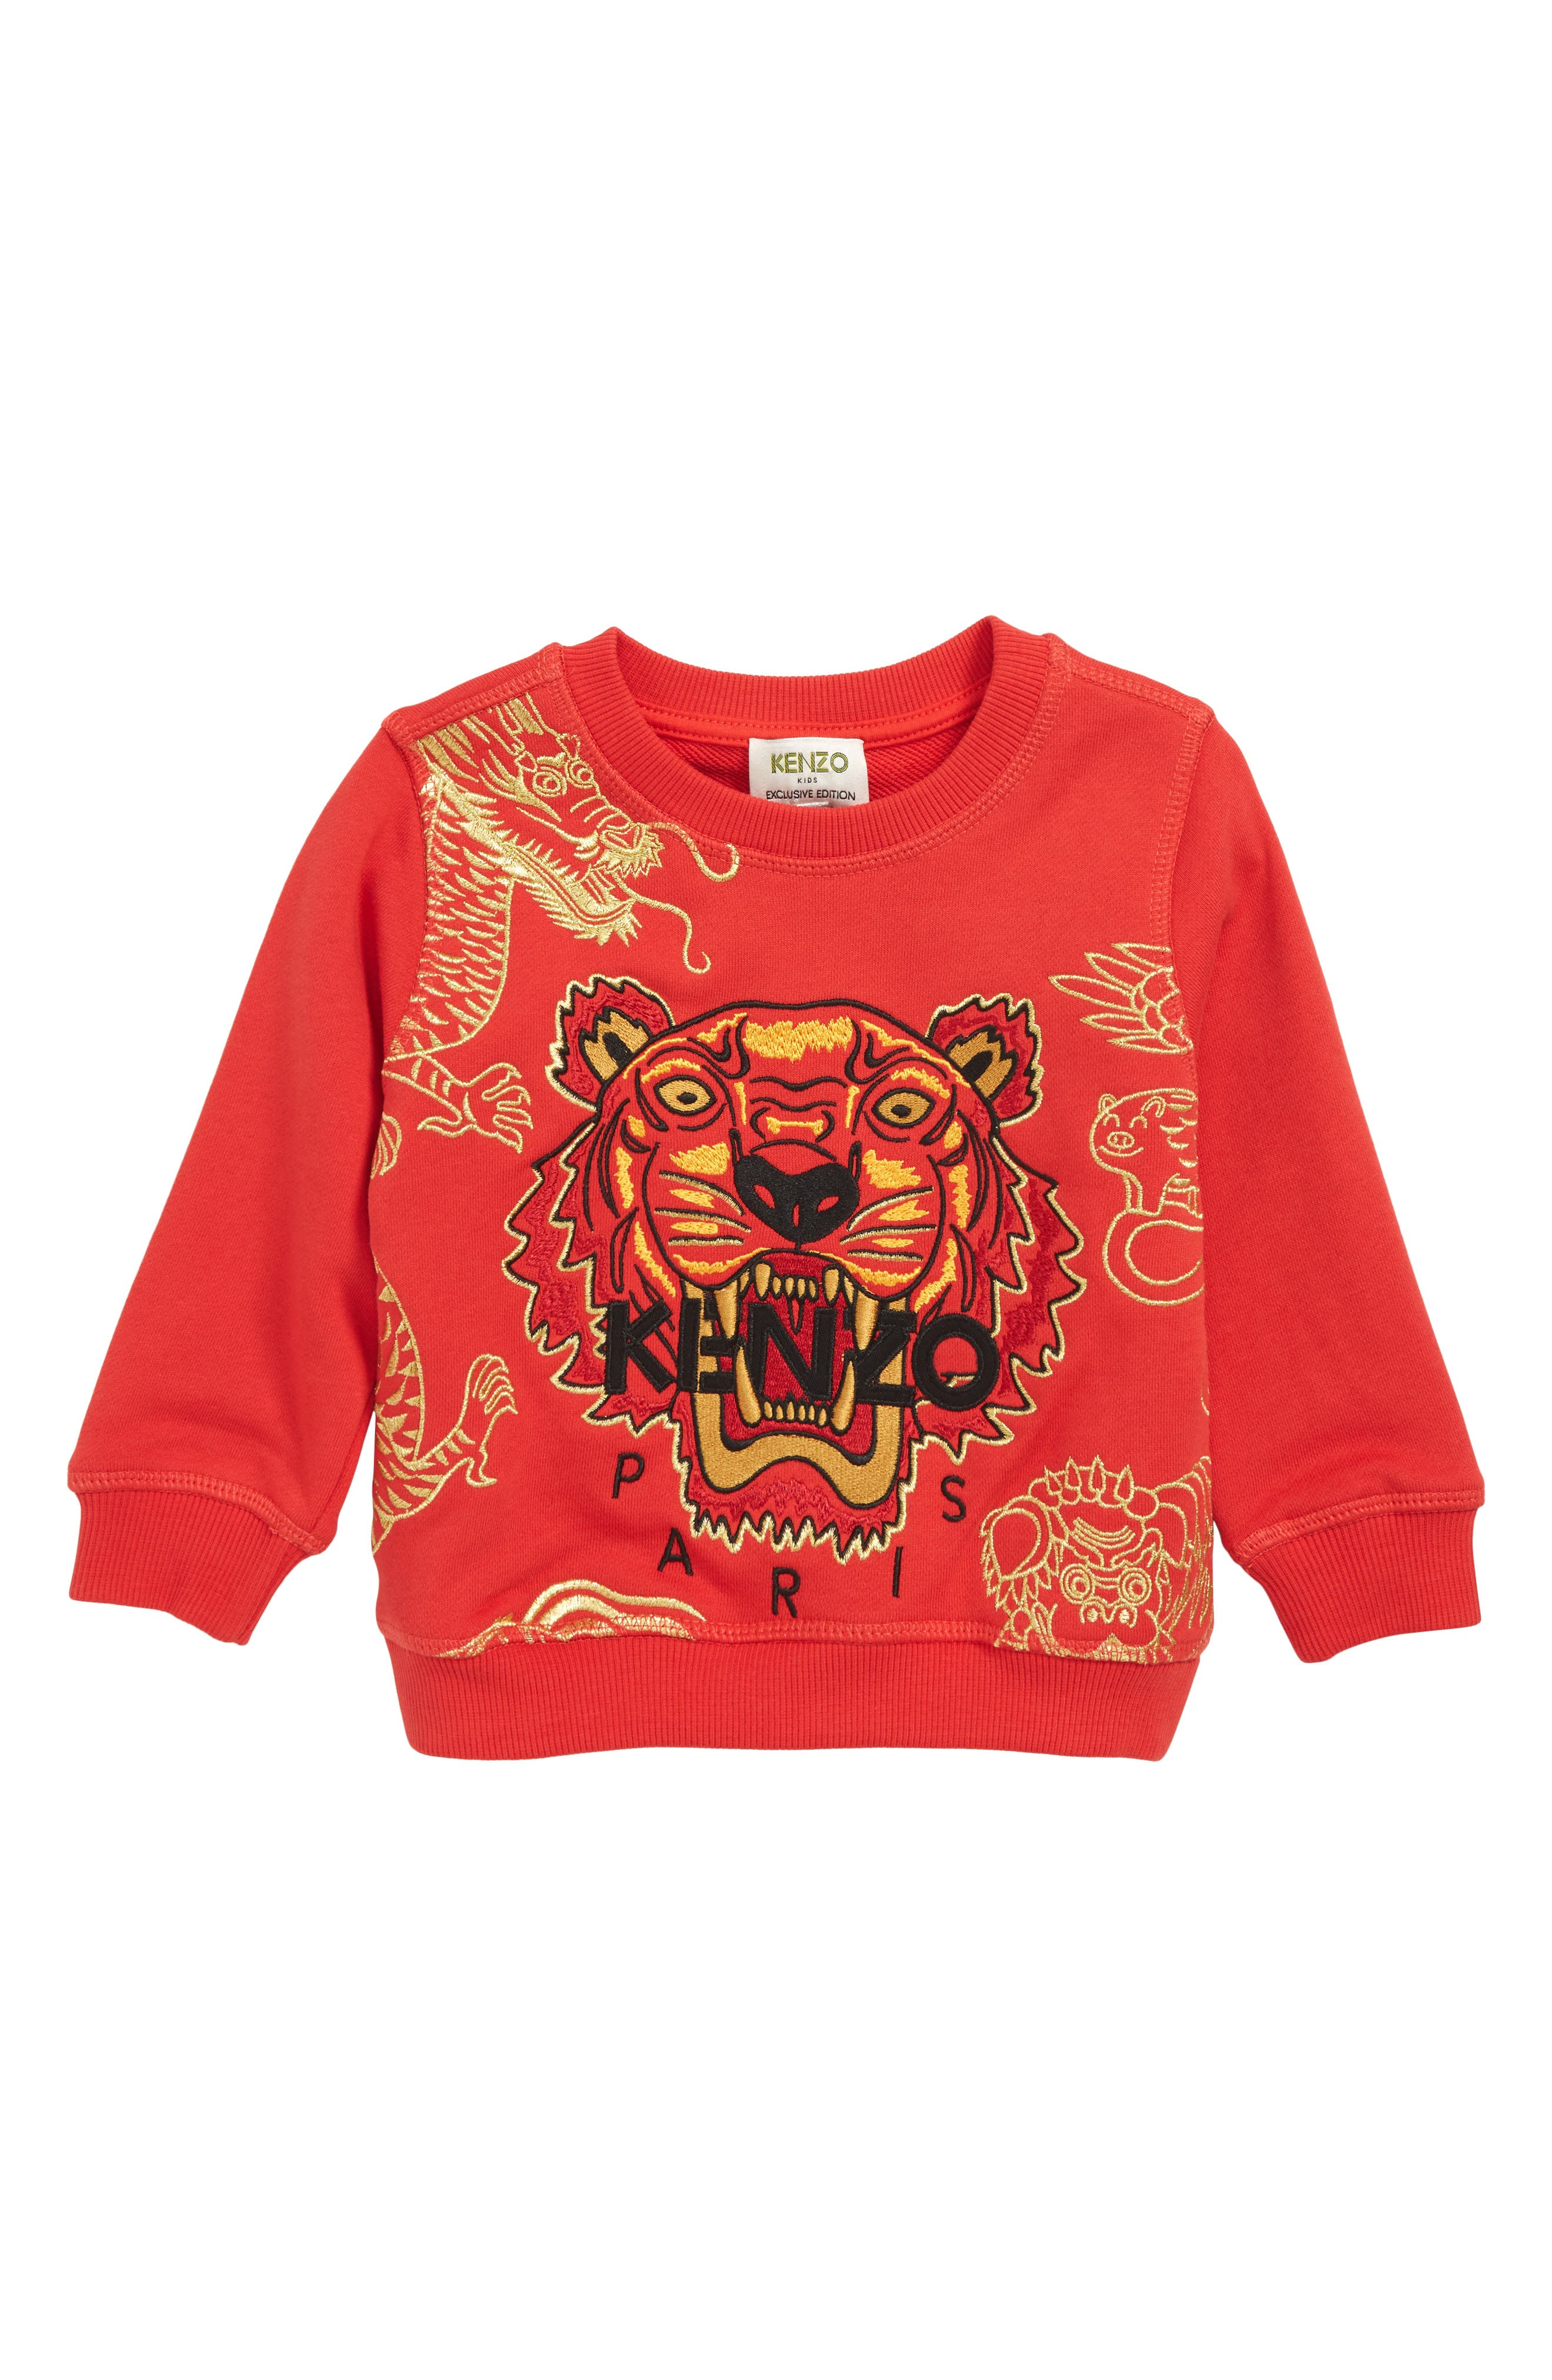 KENZO Embroidered Tiger Logo Sweatshirt, Main, color, RED